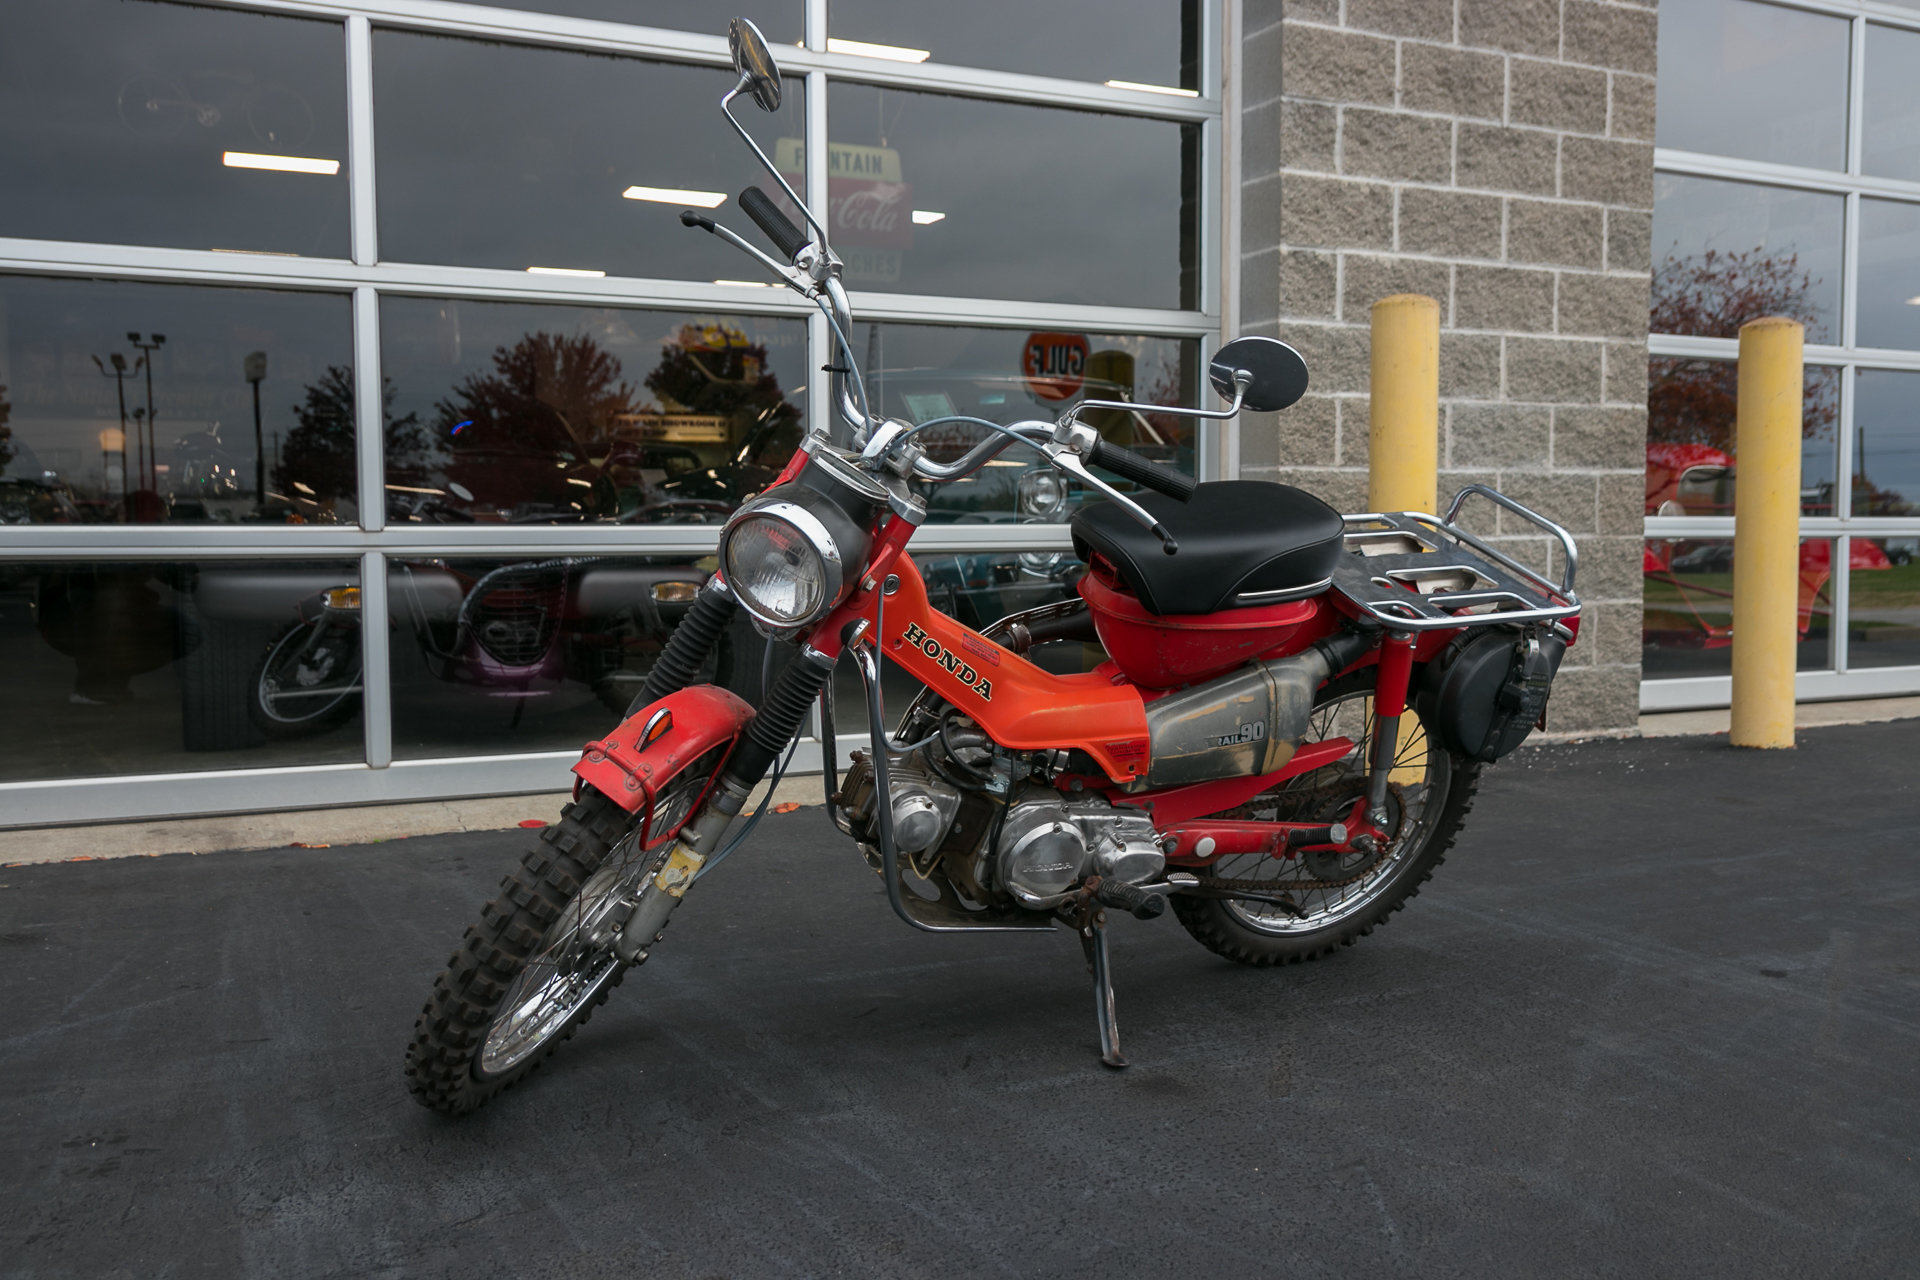 1970 honda trail 90 for sale 72624 mcg for Washington dc honda dealers